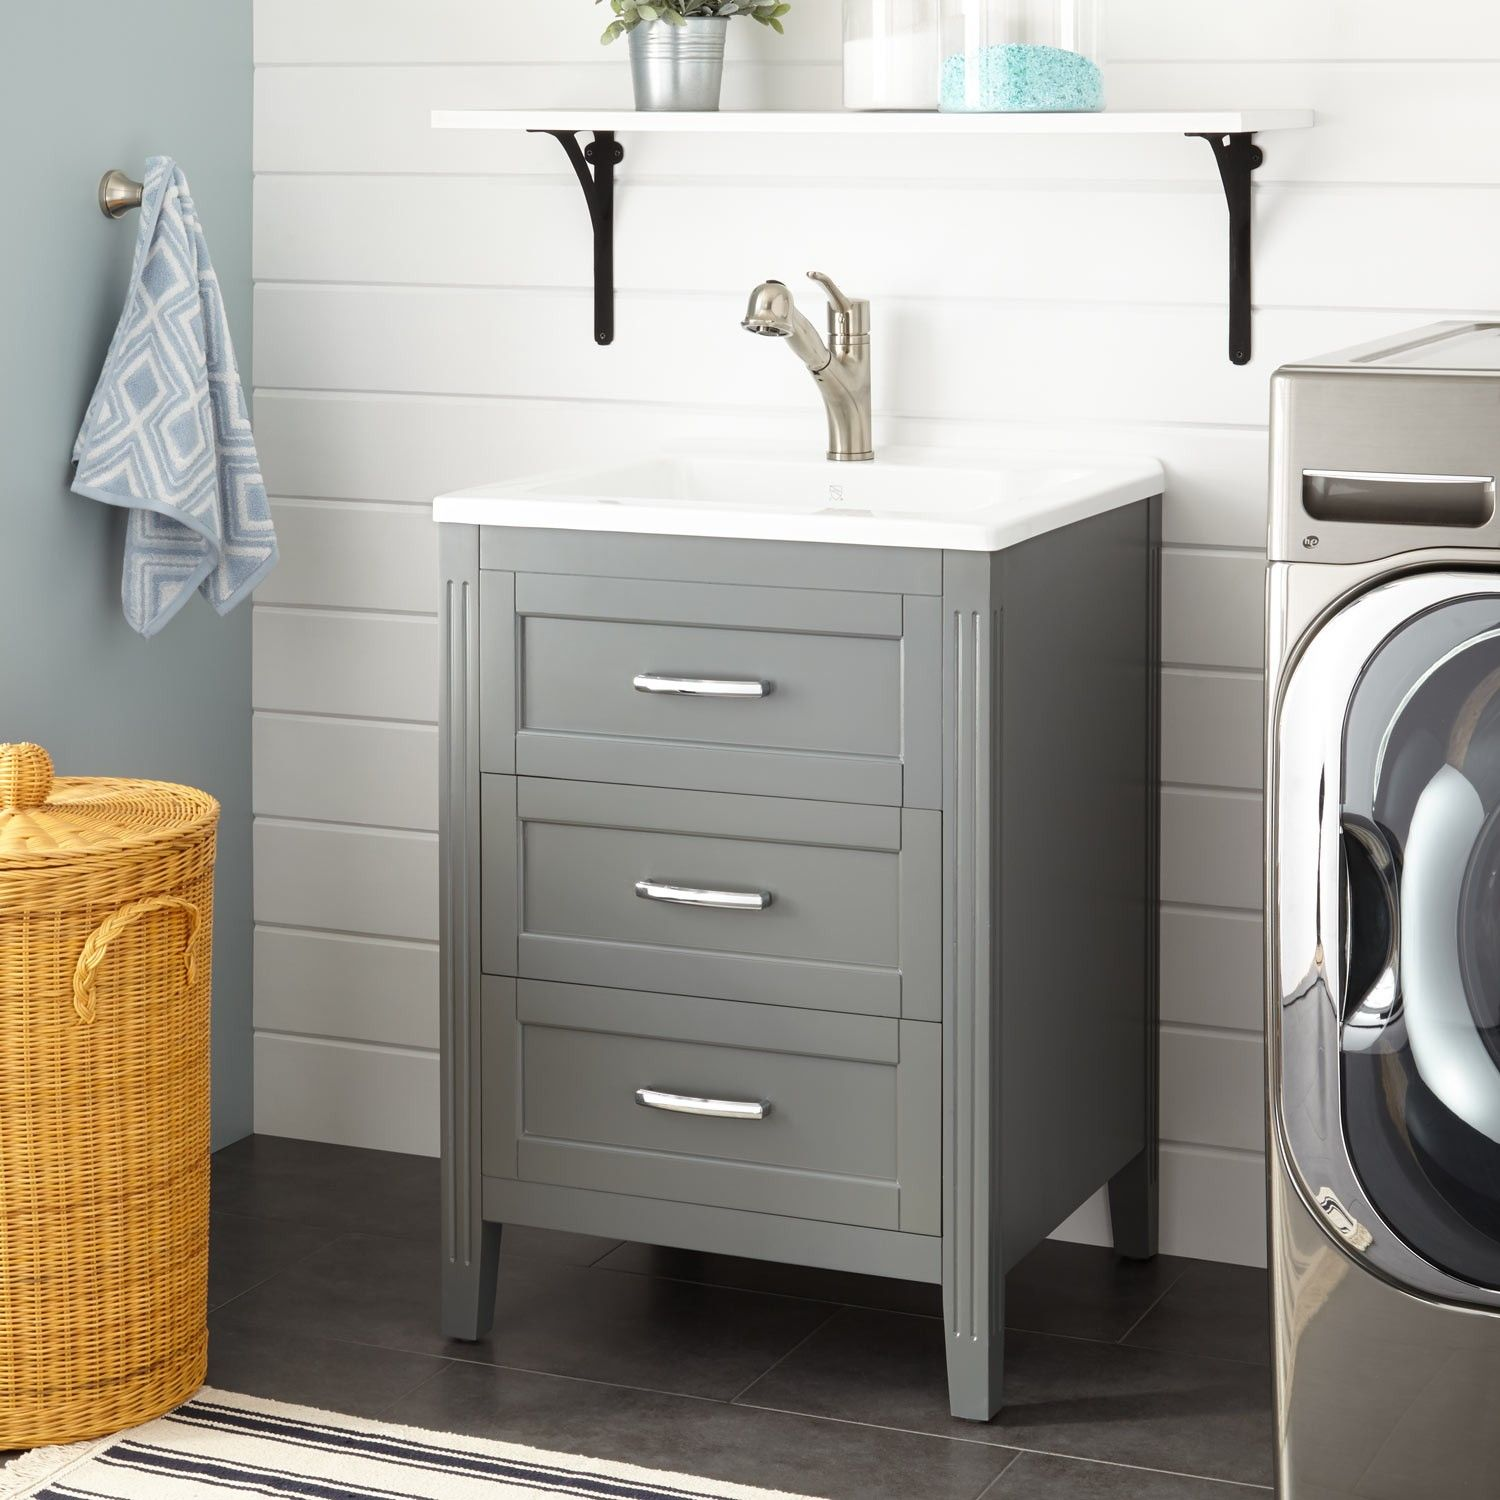 24 Isabeau Laundry Vanity Gray Utility Sinks Home Accents